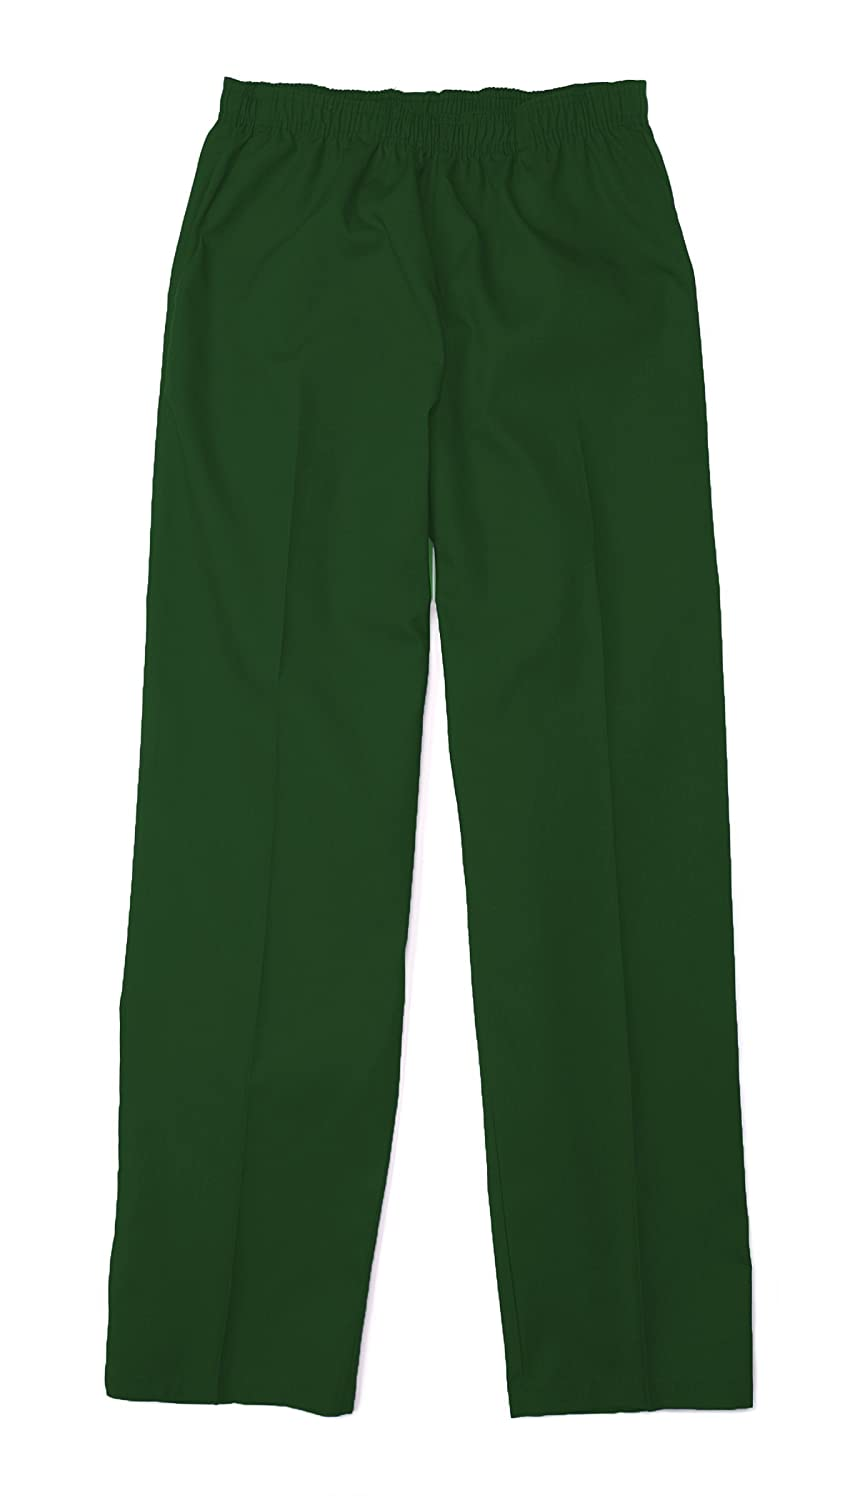 Pinnacle Textile SP63F 4.25 OZ 65/35 Polyester/Cotton, Female Elastic Waist Pant-X-Small-Hunter Green